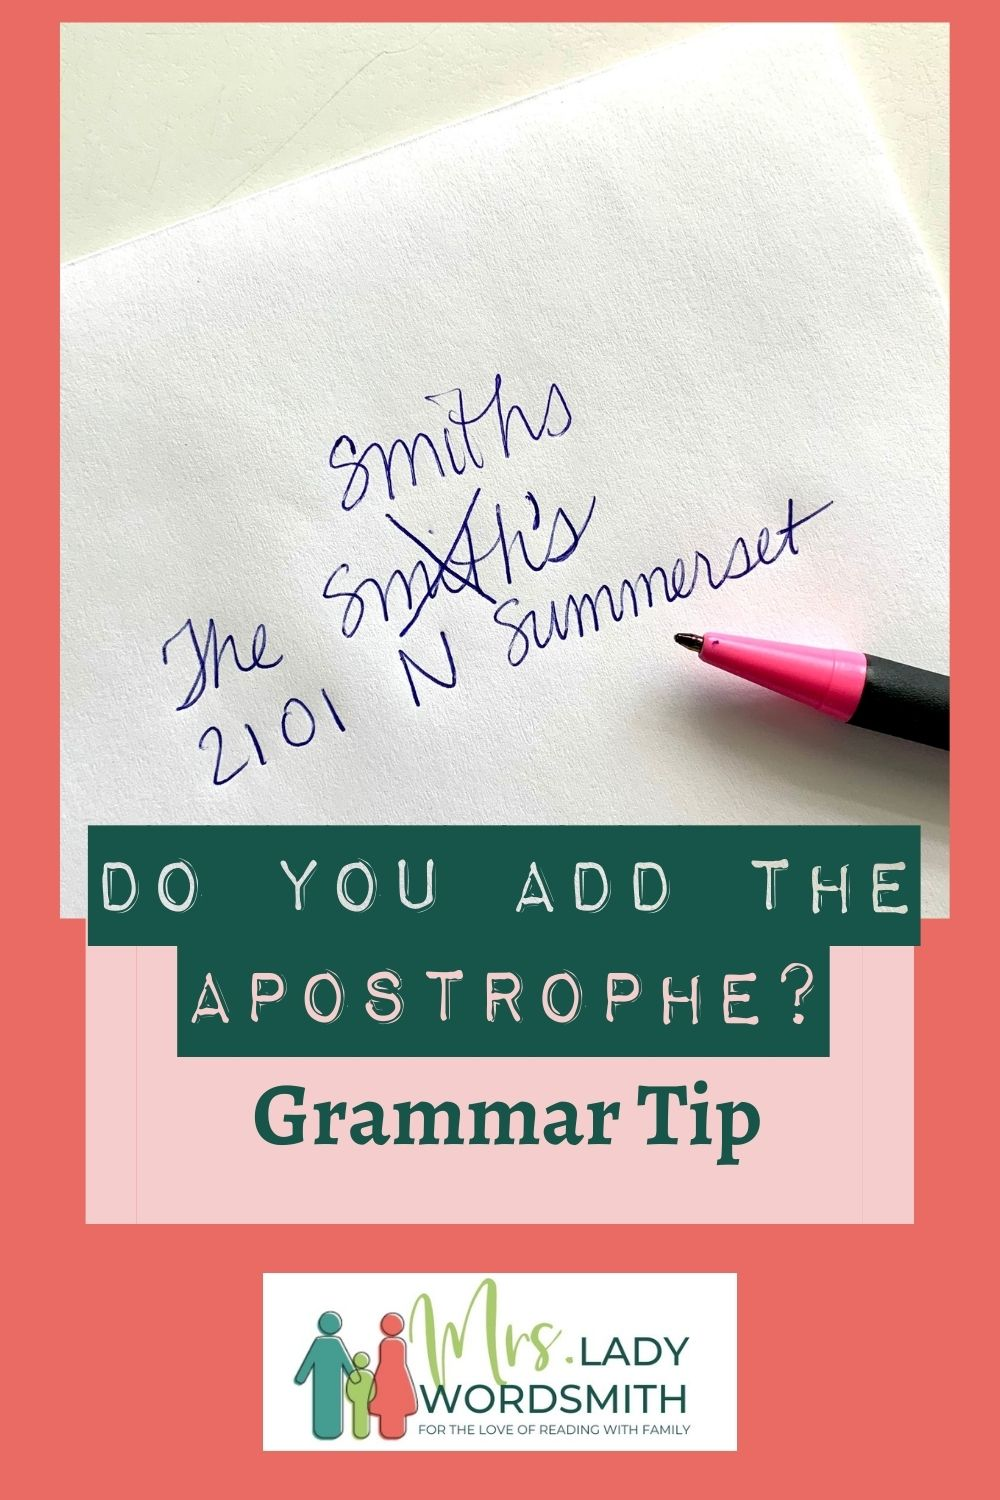 It's time to send out graduation announcements and wedding invitations. But you might be wondering if your last name and those of your guests should be plural or have a comma. You want to be correct. Let me show you how.